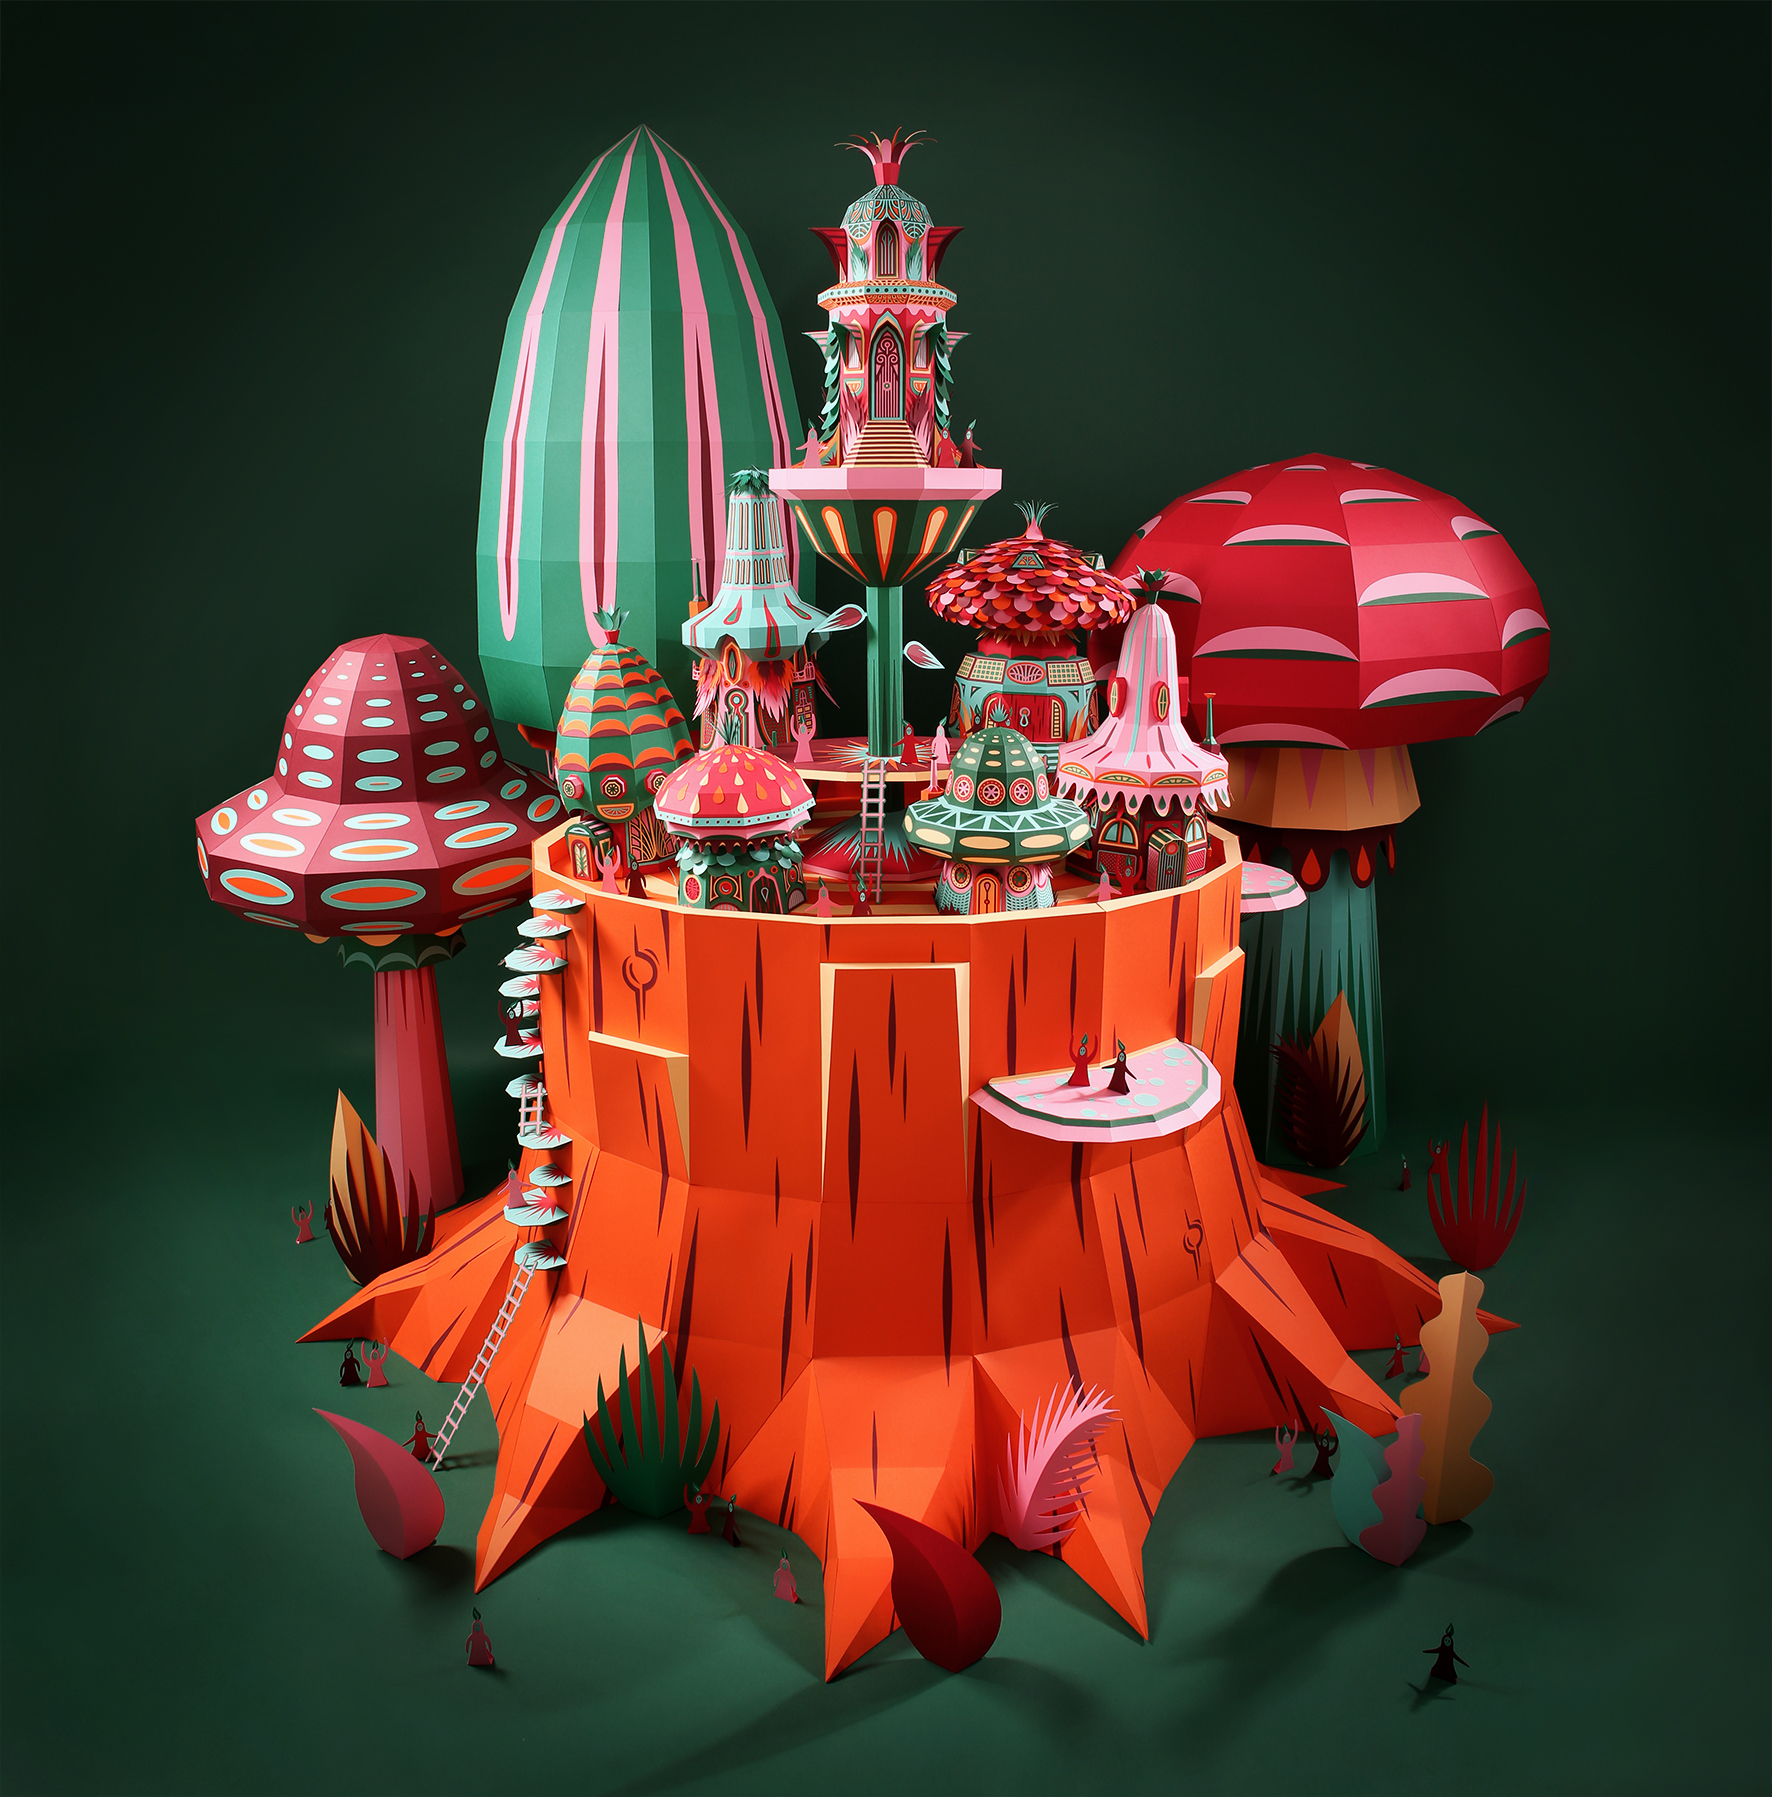 Paper Sculpture Village for Hermes by Zim & Zou